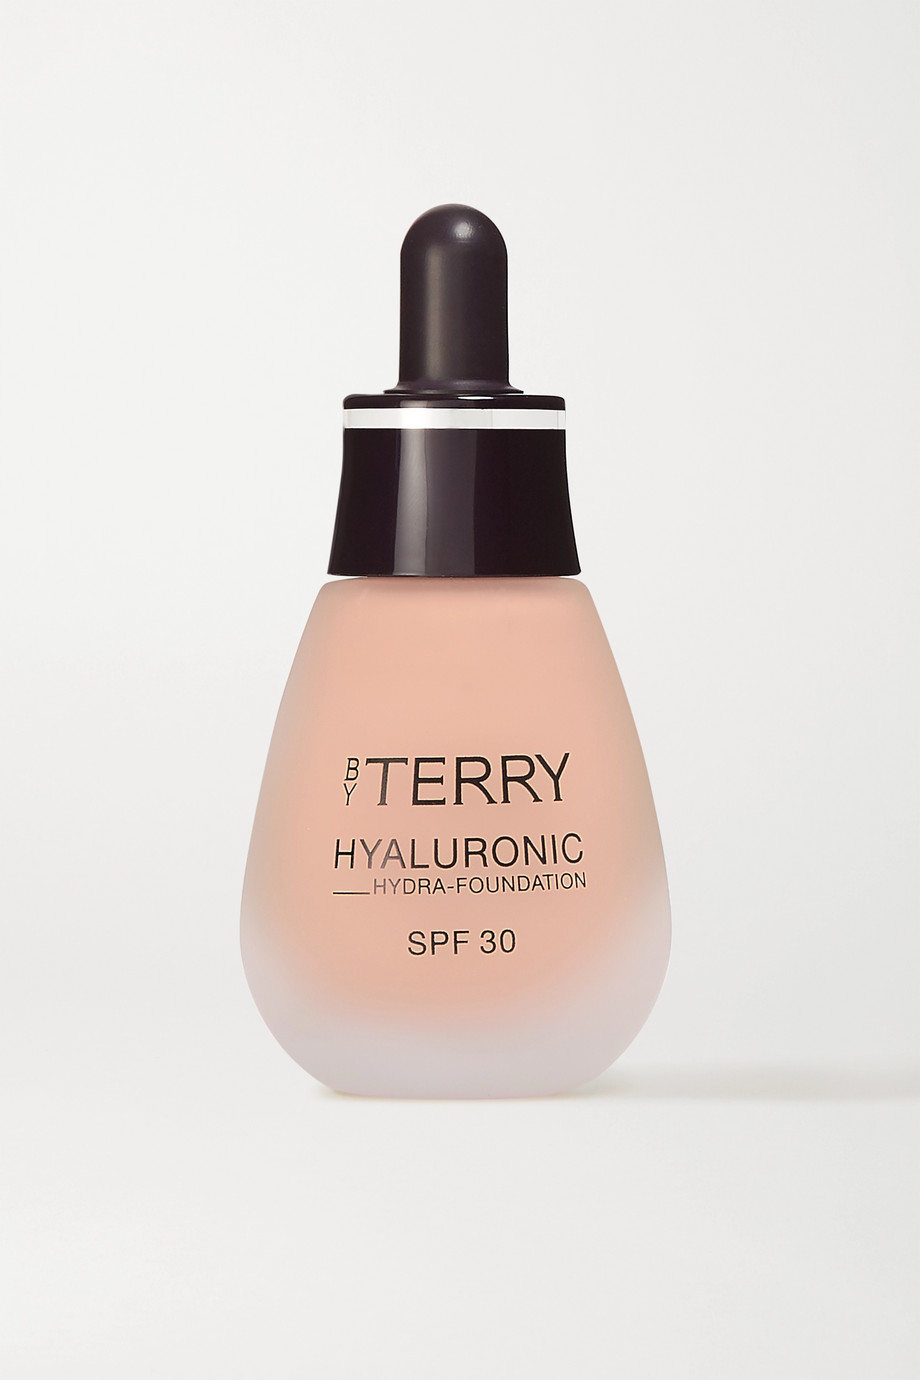 BY TERRY Fond de teint liquide soin perfection Hyaluronic Hydra-Foundation SPF 30, 500C